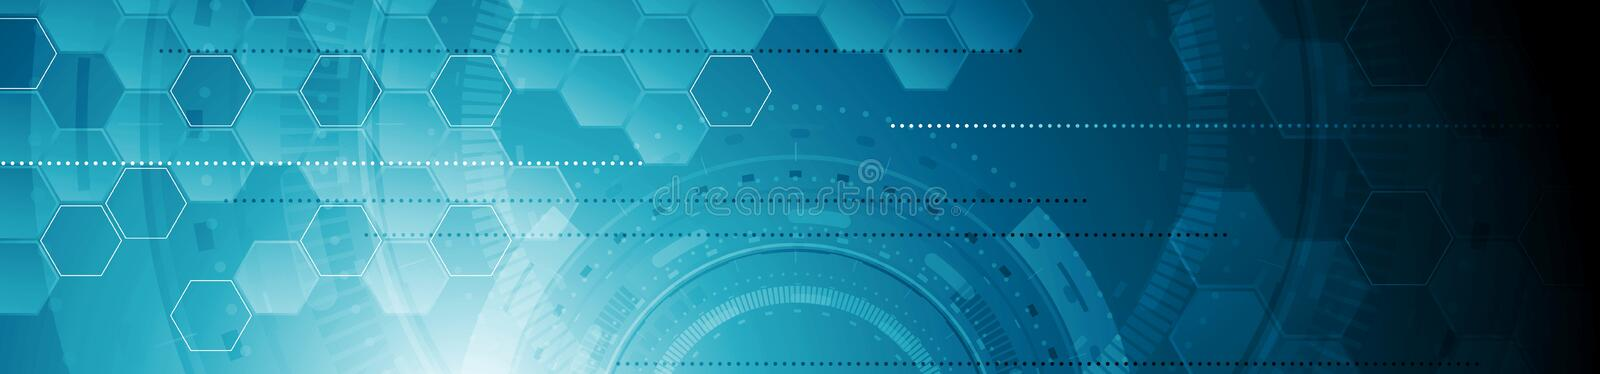 Abstract tech industrial geometric web header banner royalty free illustration